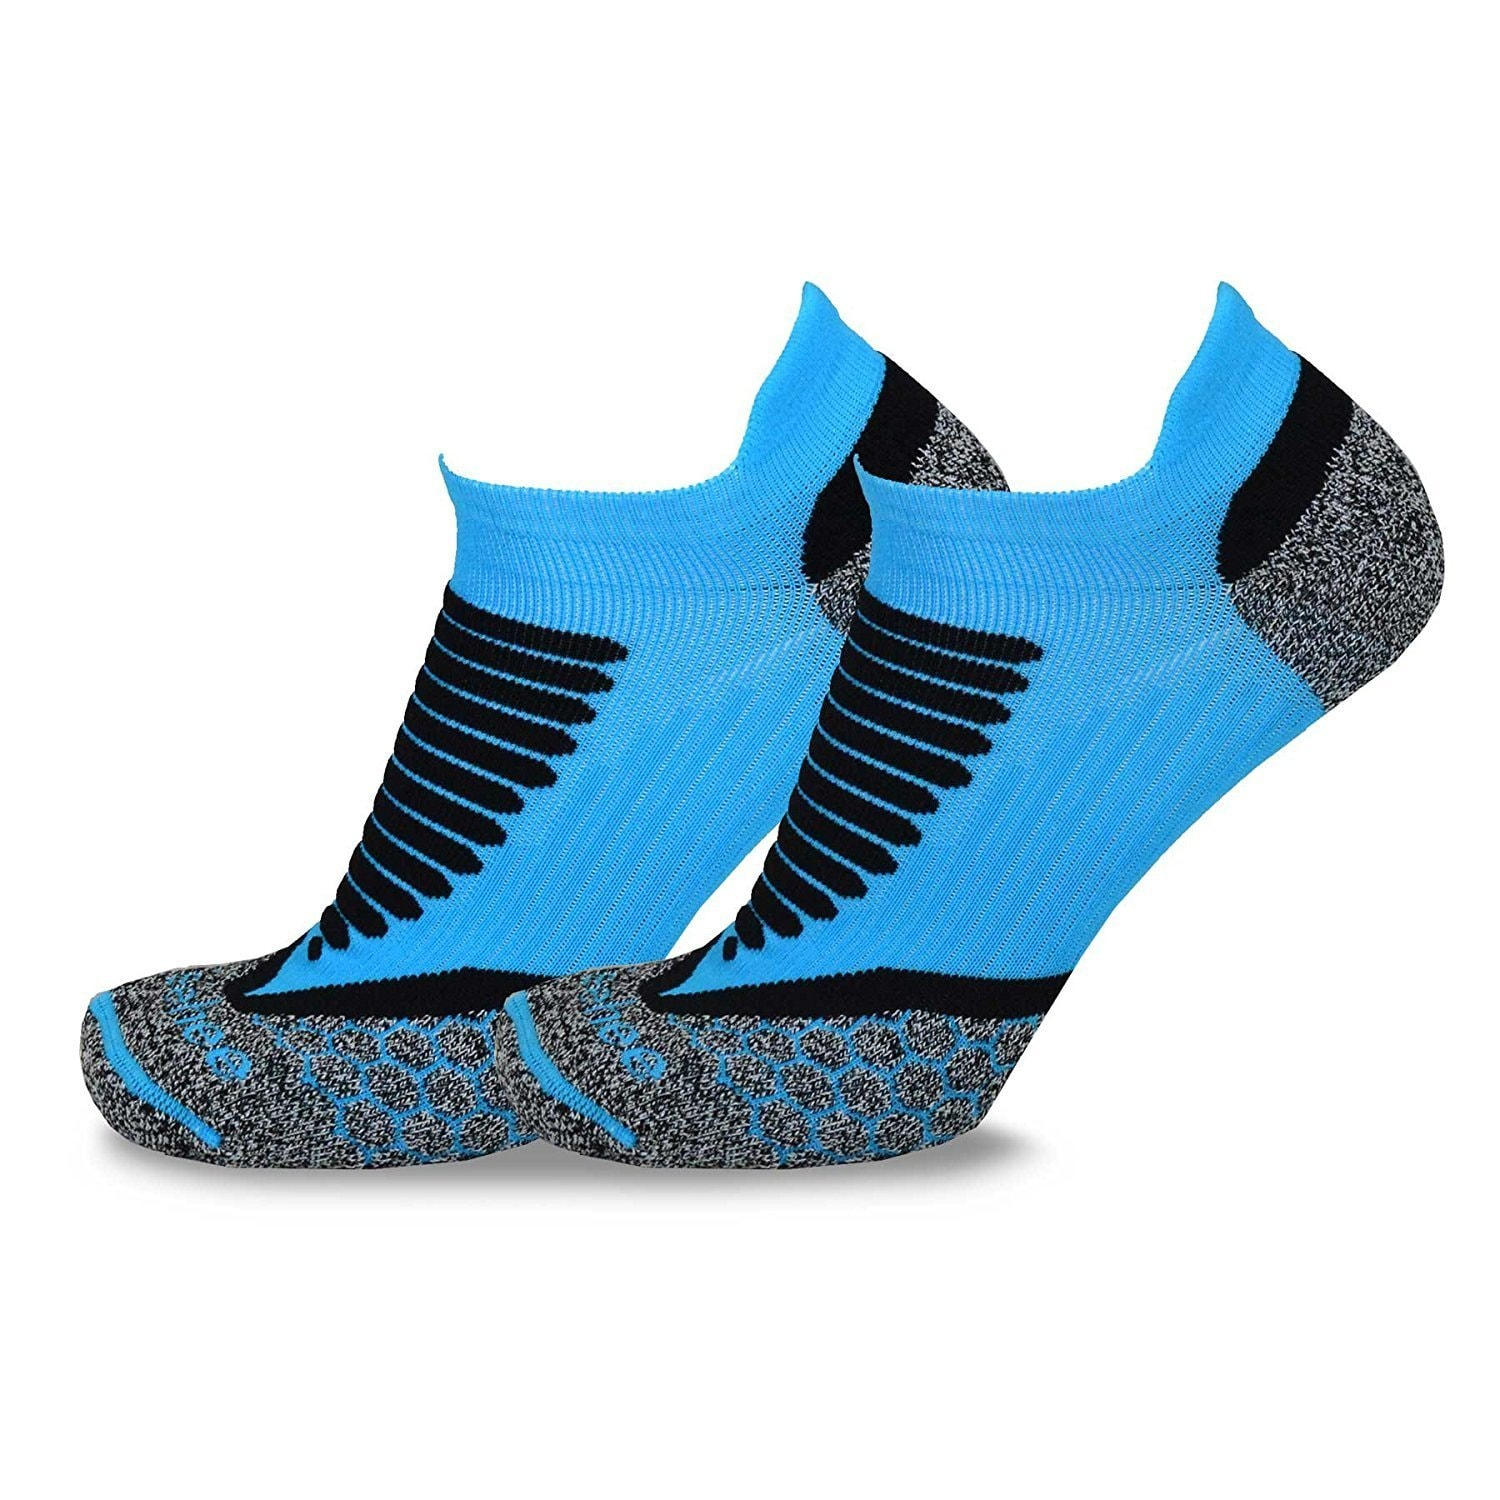 TeeHee Athletic Sports Functional Compression Cushioned Socks 3-Pack